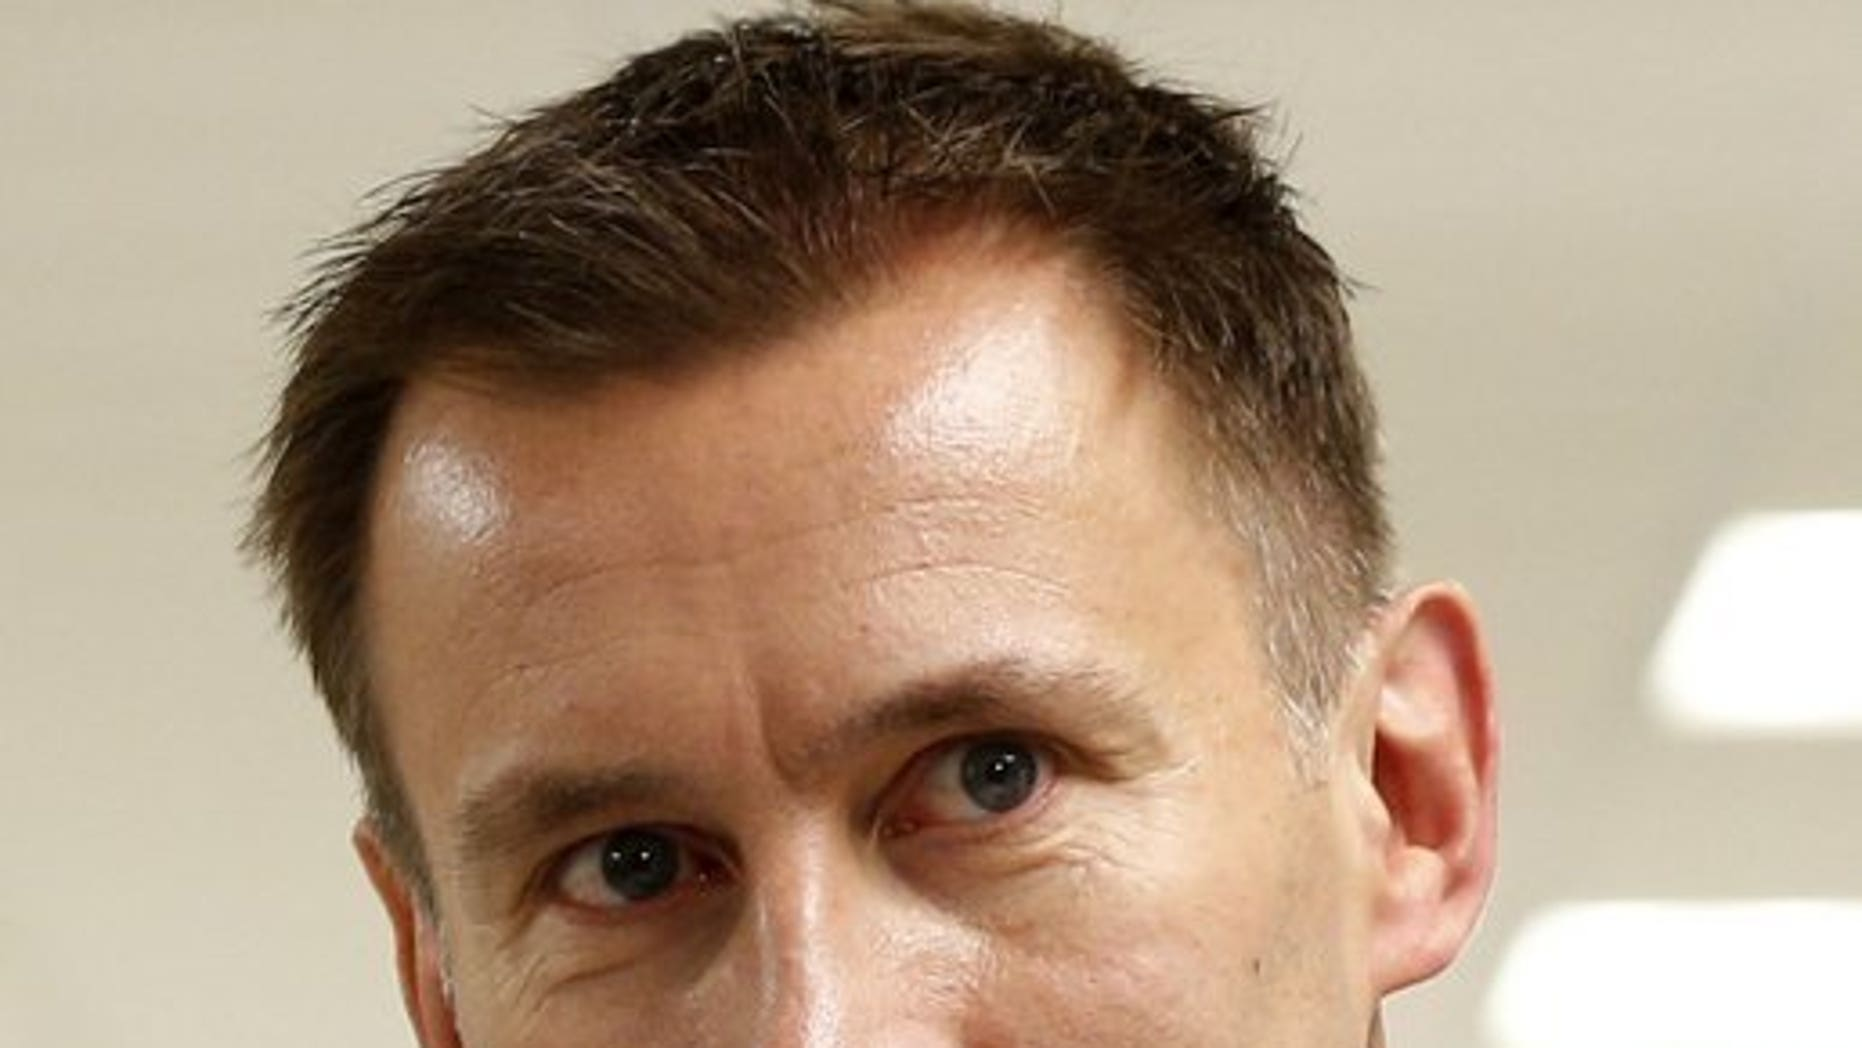 Jeremy Hunt, then Britain's health secretary, is pictured during a tour of University College Hospital HQ and Education Centre in central London on June 21, 2013. (Associated Press)